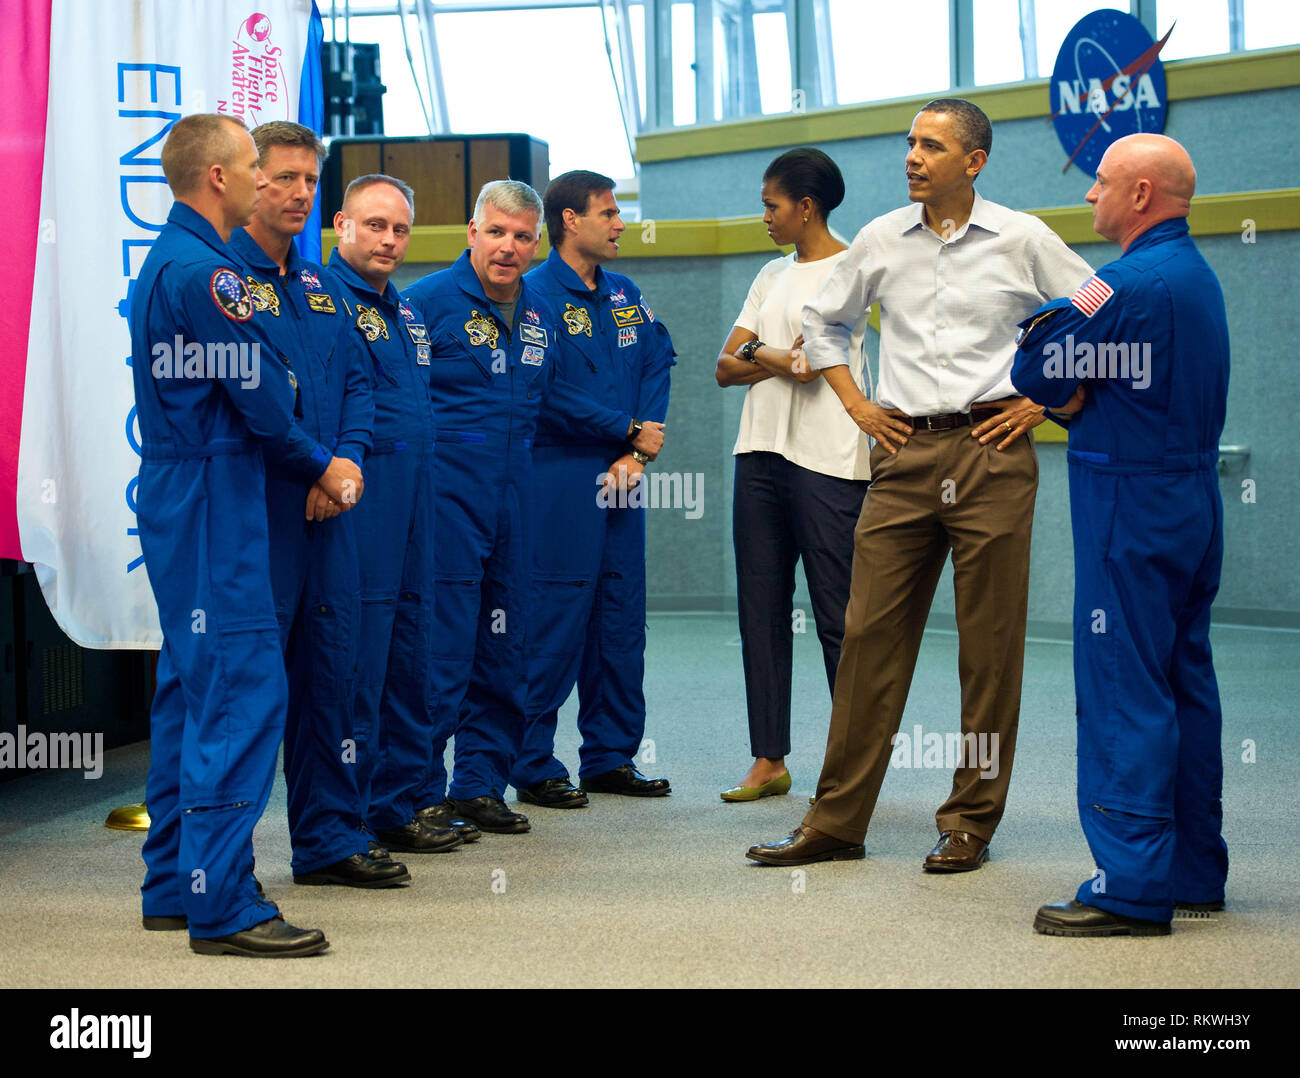 United States President Barack Obama and First Lady Michelle Obama meet with STS-134 space shuttle Endeavor commander Mark Kelly, right, and shuttle astronauts, from left, Andrew Feustel, European Space Agency's Roberto Vittori, Michael Fincke, Gregory H. Johnson, and Greg Chamitoff, after their launch was scrubbed, Friday, April 29, 2011, at Kennedy Space Center in Cape Canaveral, Florida.Mandatory Credit: Bill Ingalls/NASA via CNP | usage worldwide - Stock Image